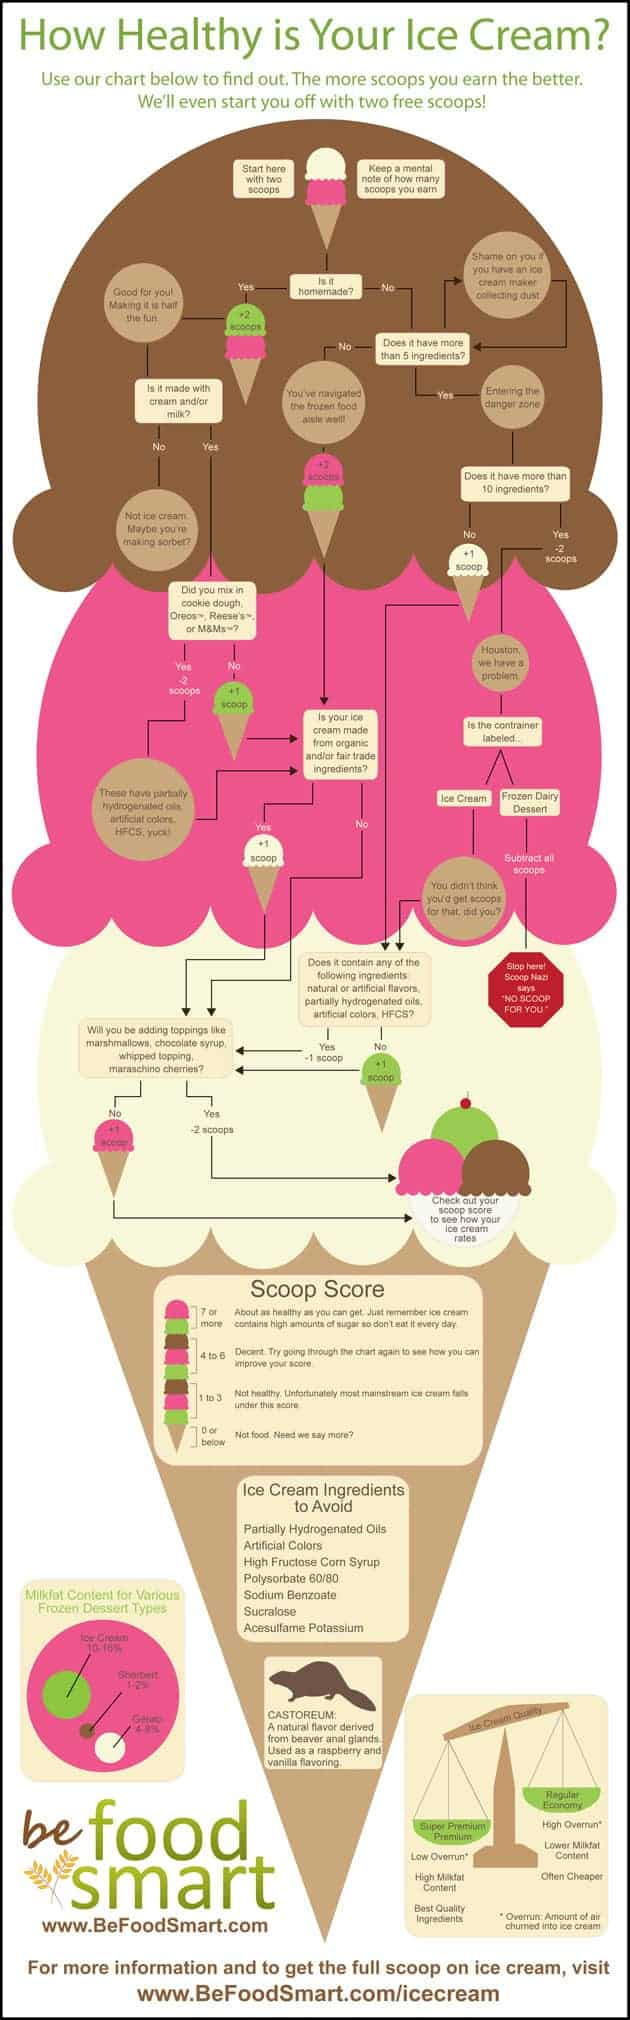 How Healthy is Your Ice Cream?